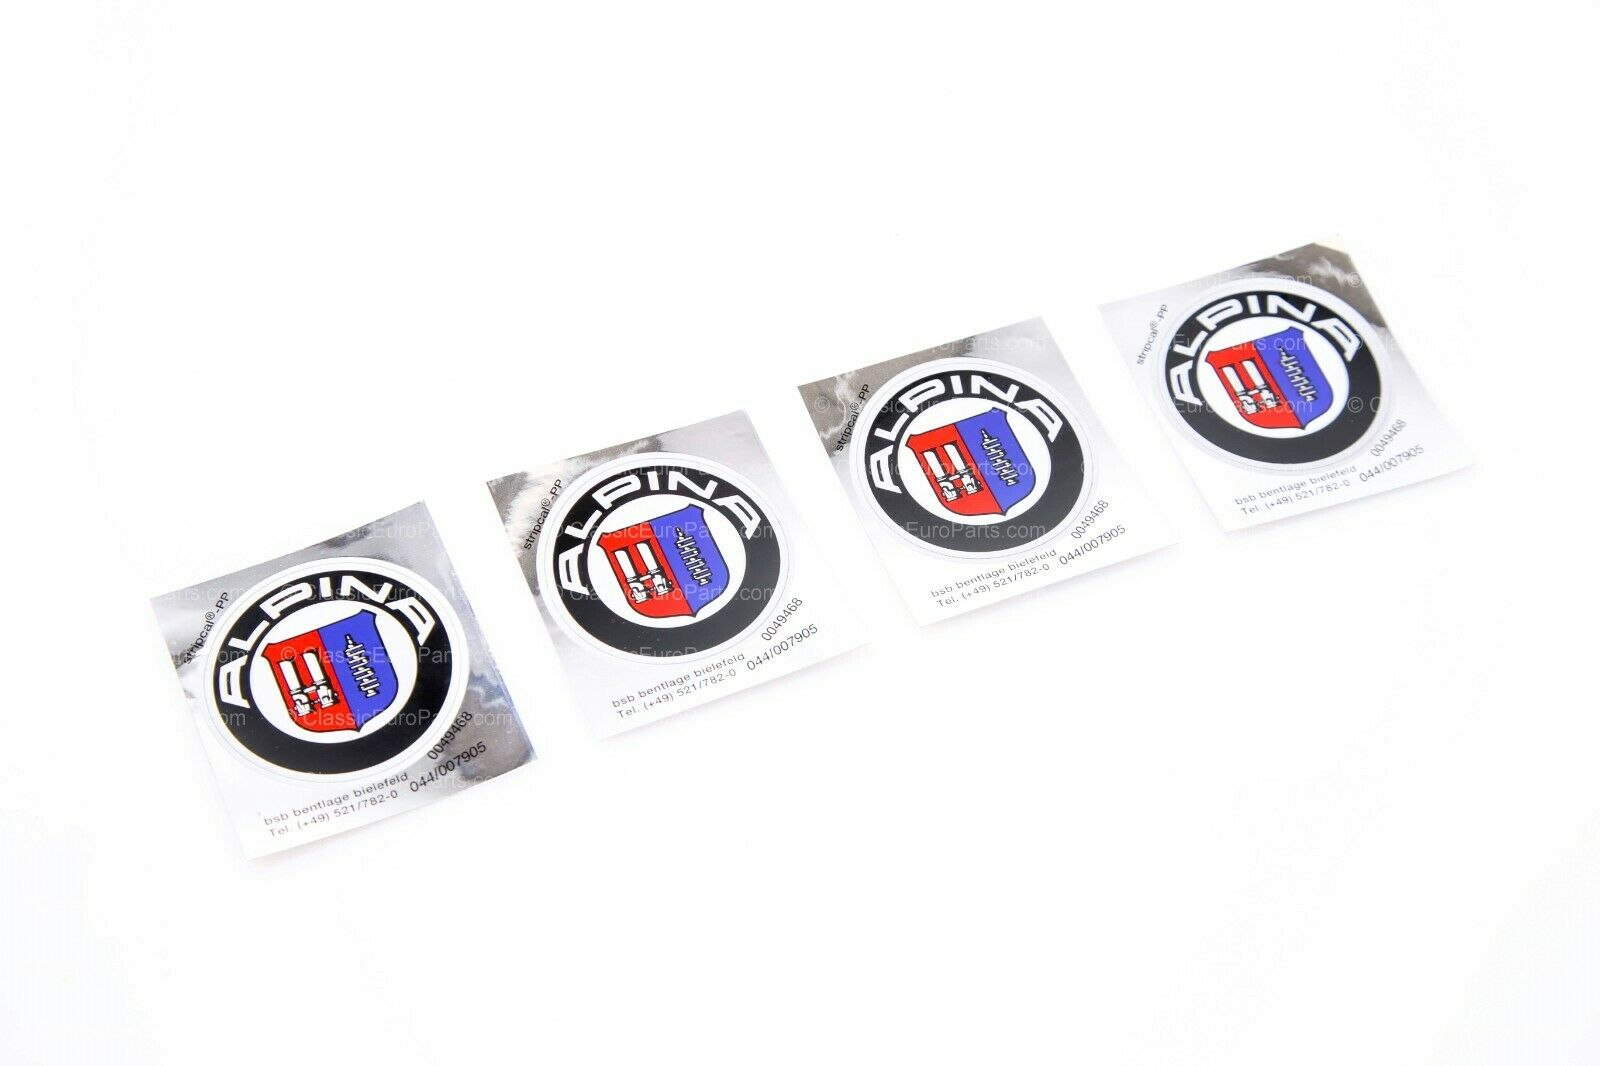 Wheel center stickers / badges for Alpina wheels made from